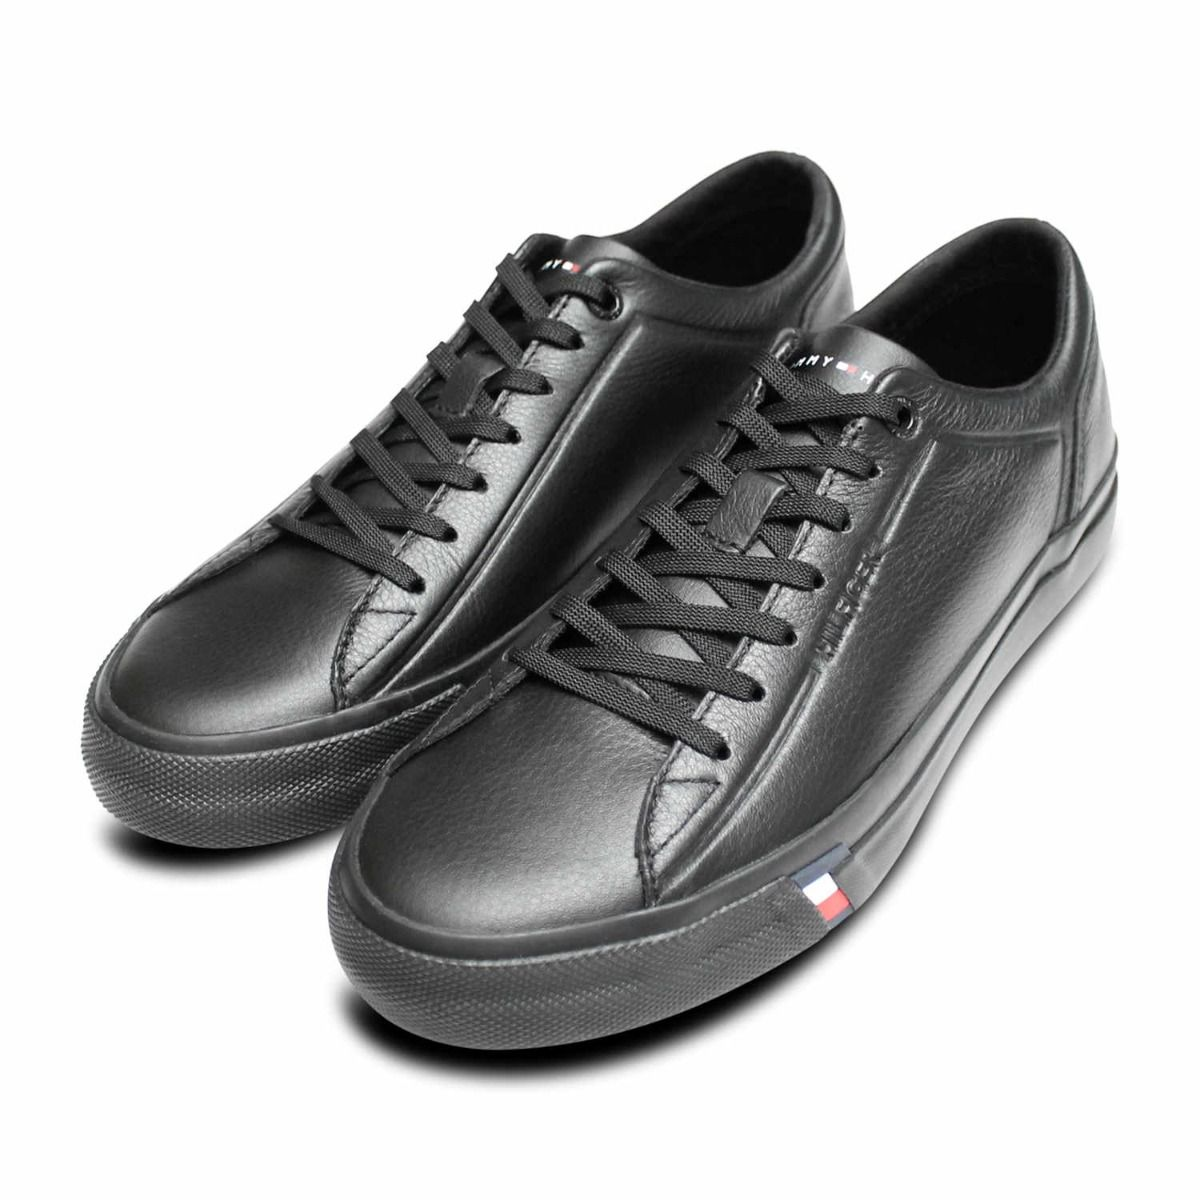 Premium Black Leather Lace Up Tommy